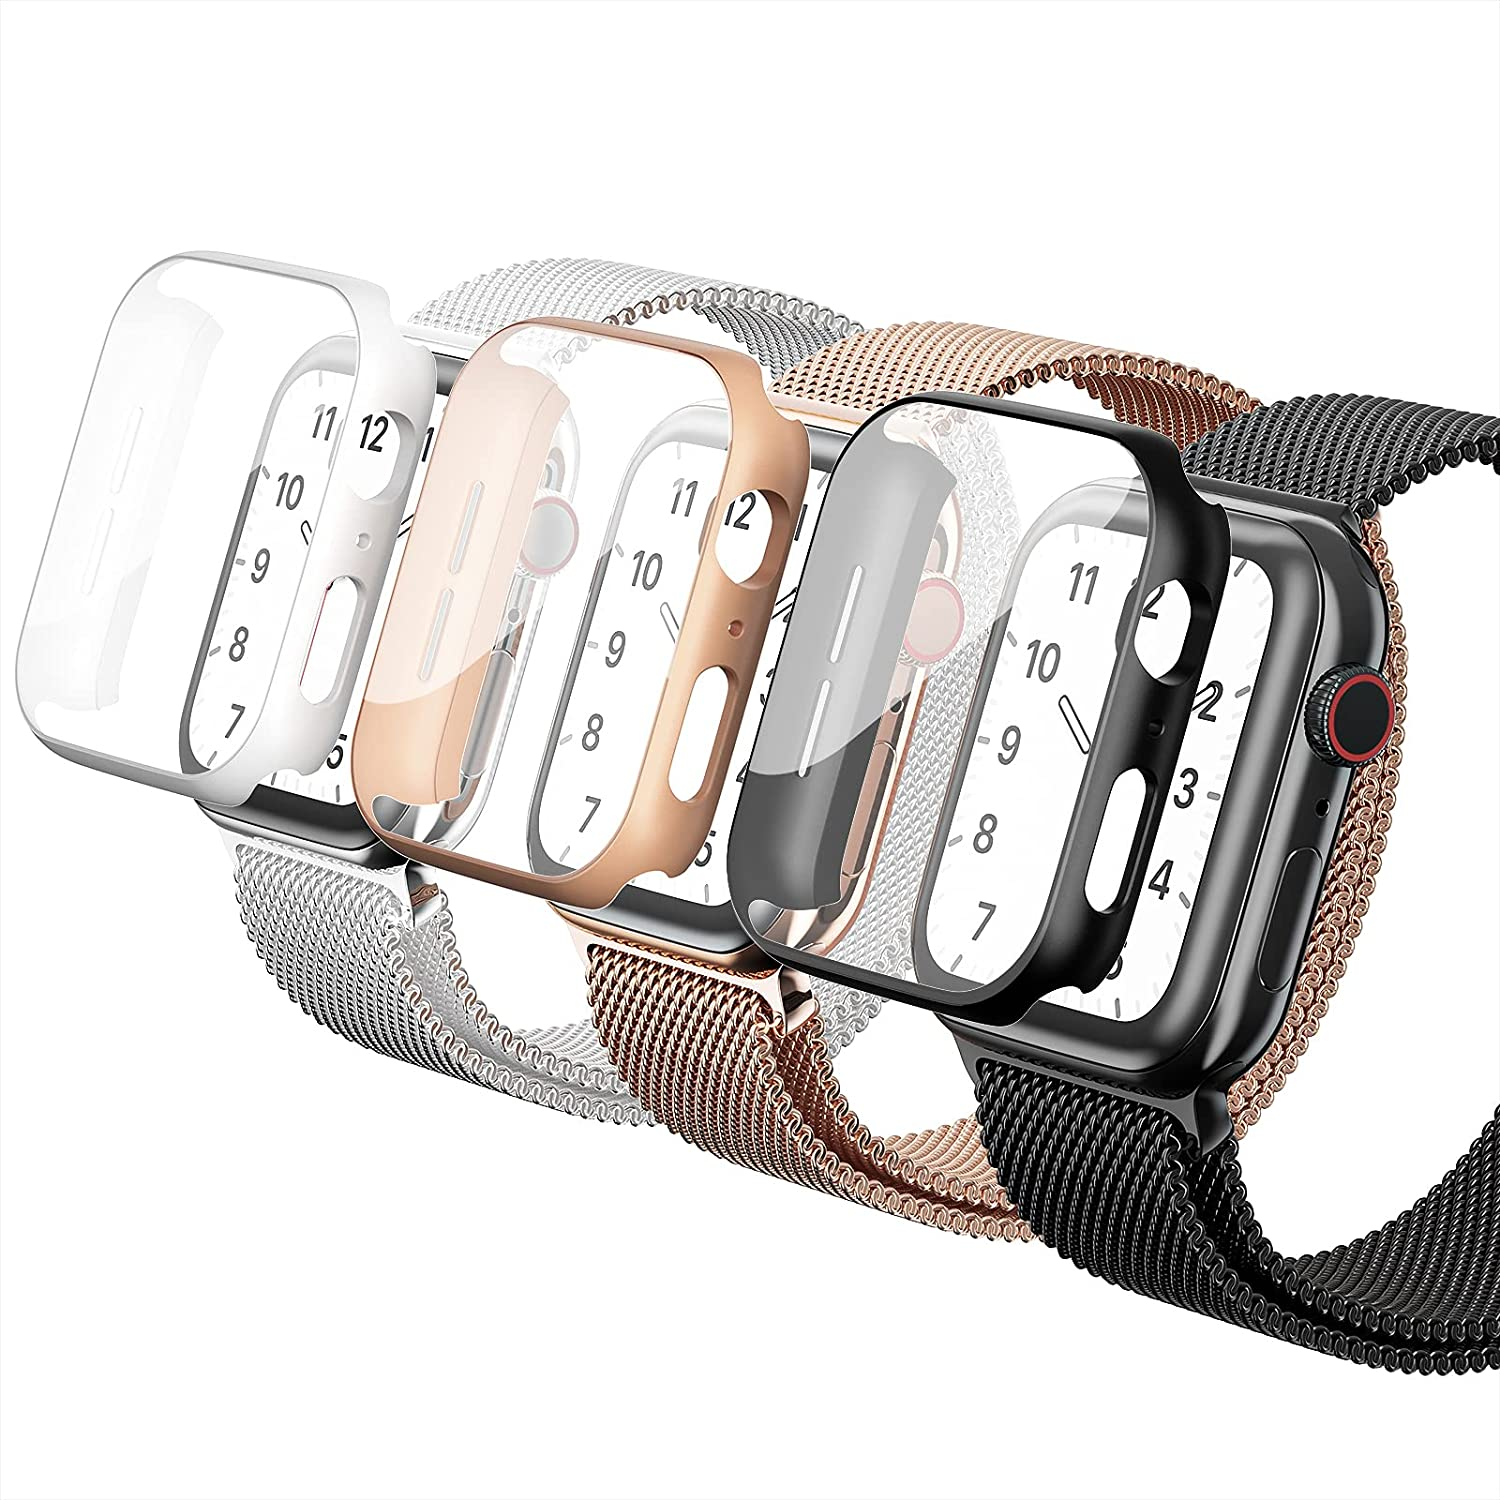 Metal Iwatch Band with Case Compatible for Apple Watch Band 38mm 40mm 42mm 44mm, Screen Protector Protector Magnetic Stainless Steel Mesh Replacement Starp Wristbands For Iwatch Series 6/5/4/3/2/1/SE